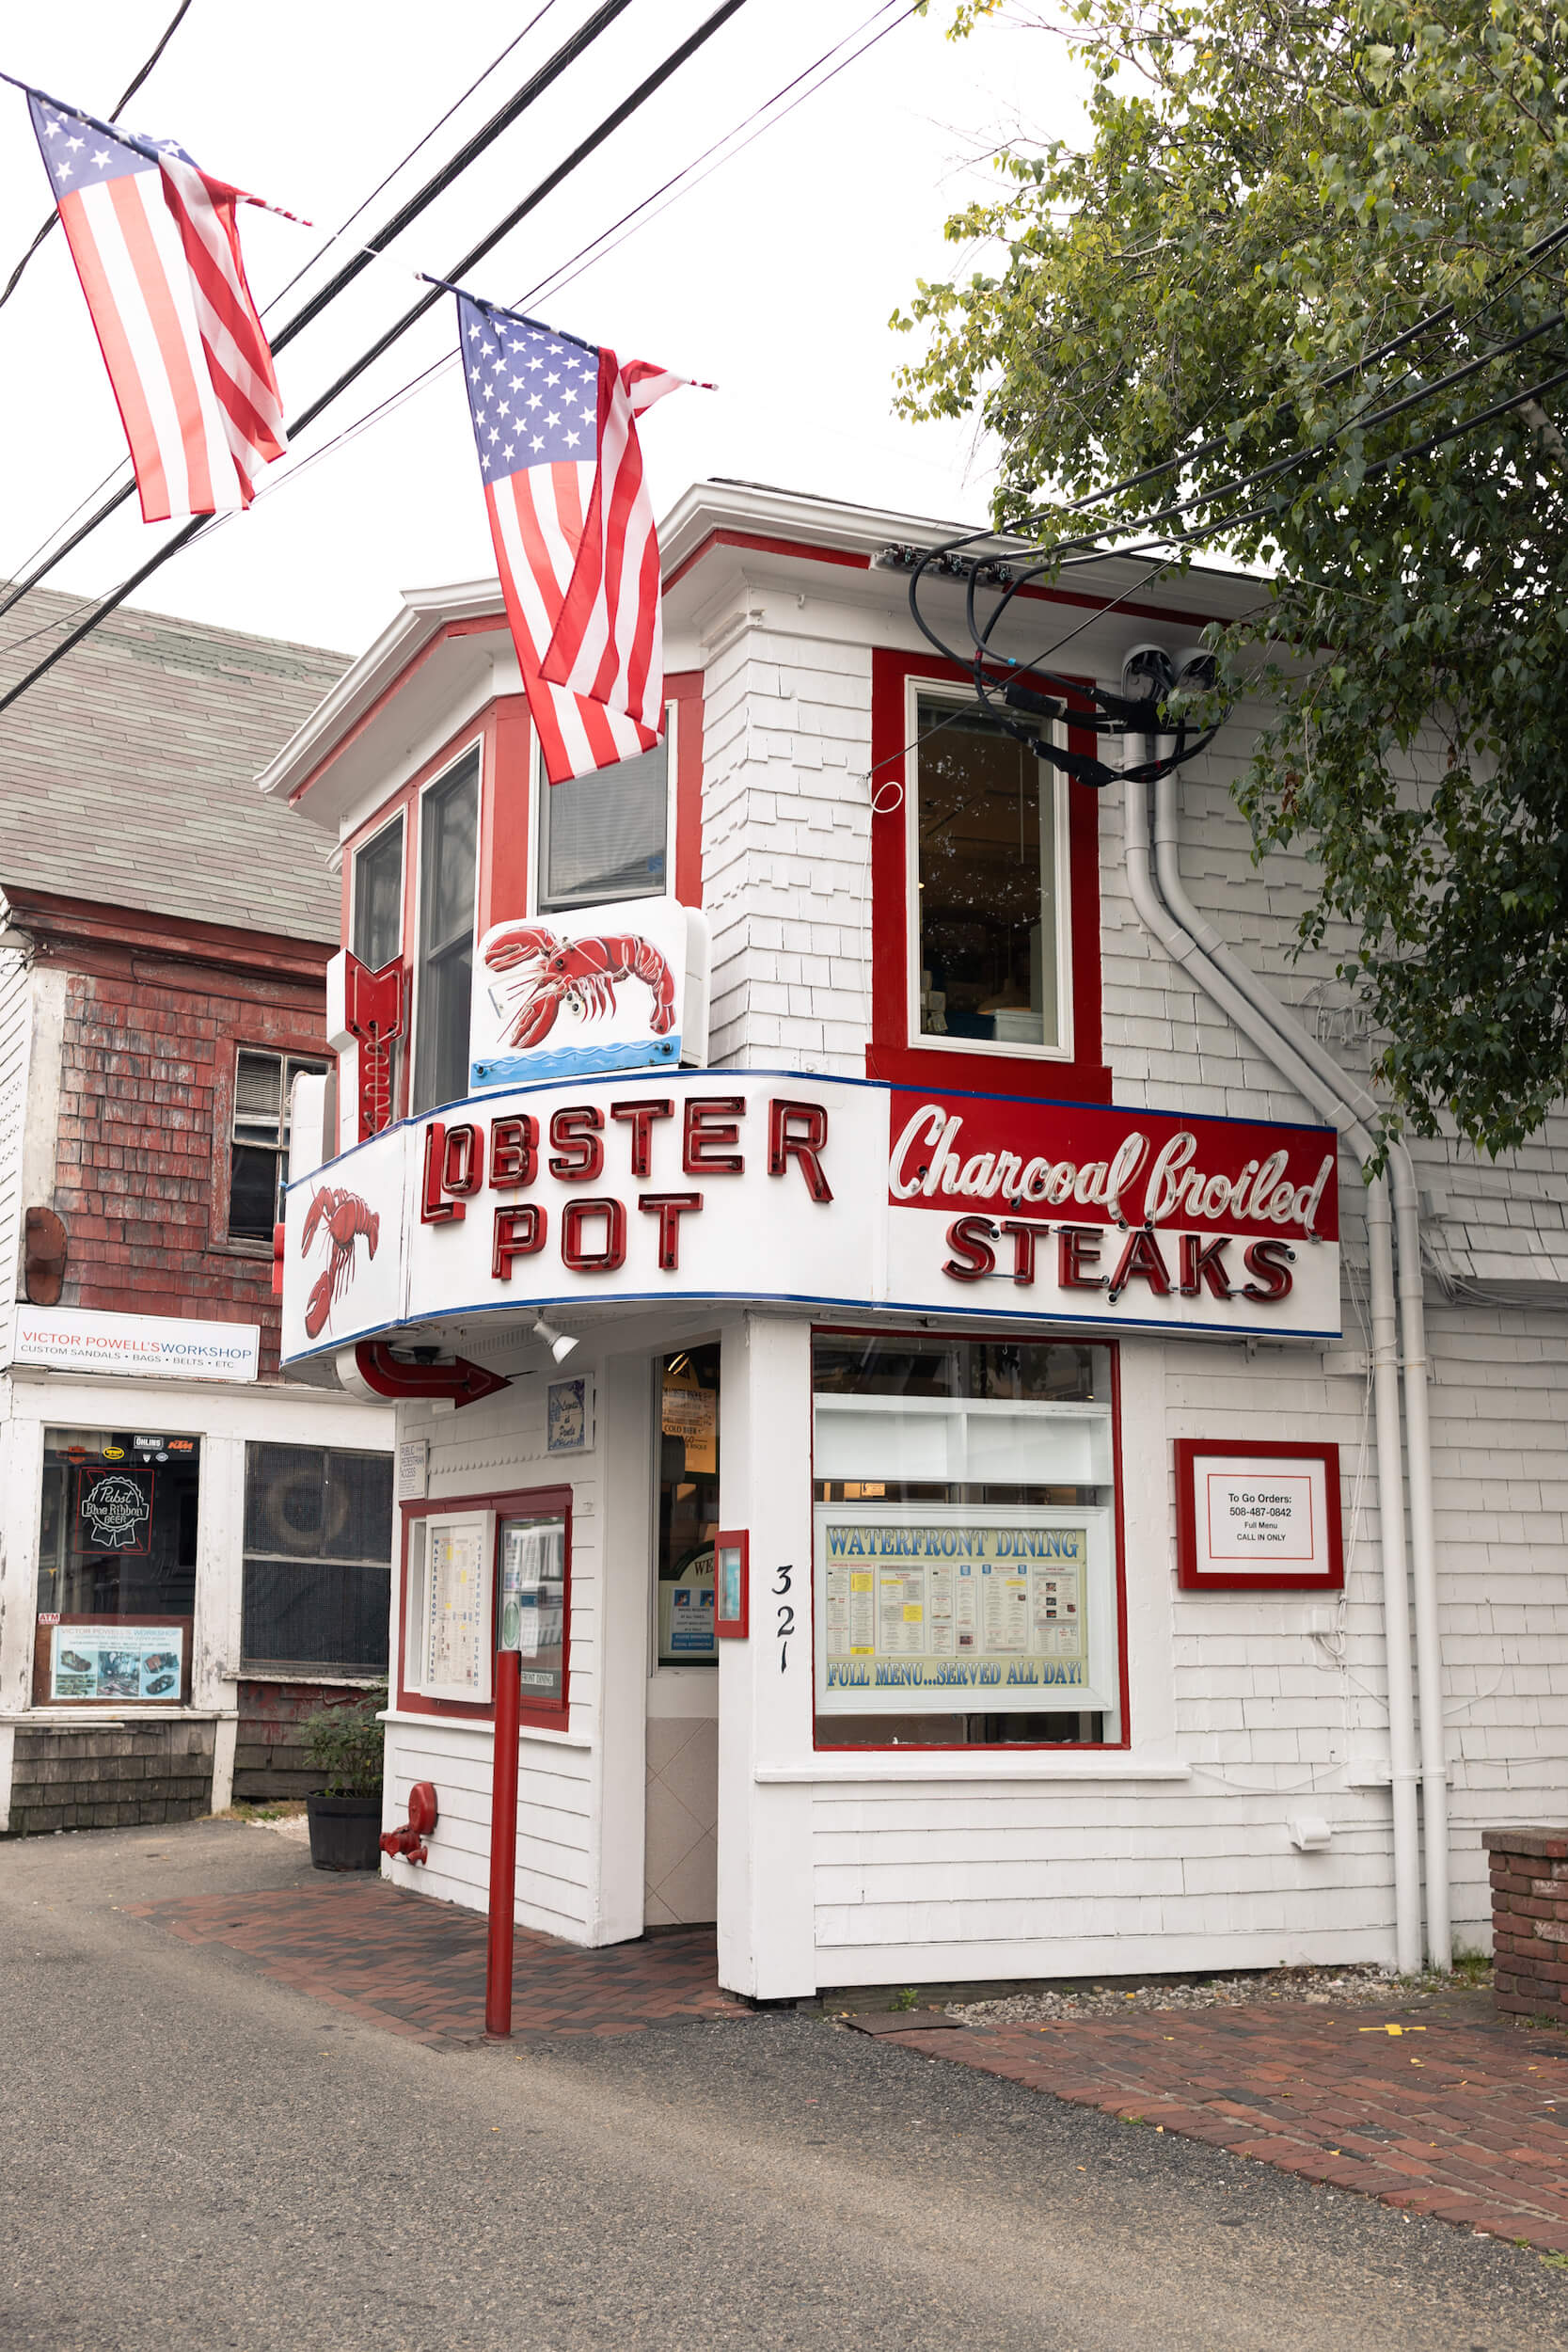 Exterior of The Lobster Pot restaurant on Commercial Street in Cape Cod, Massachusetts, USA.